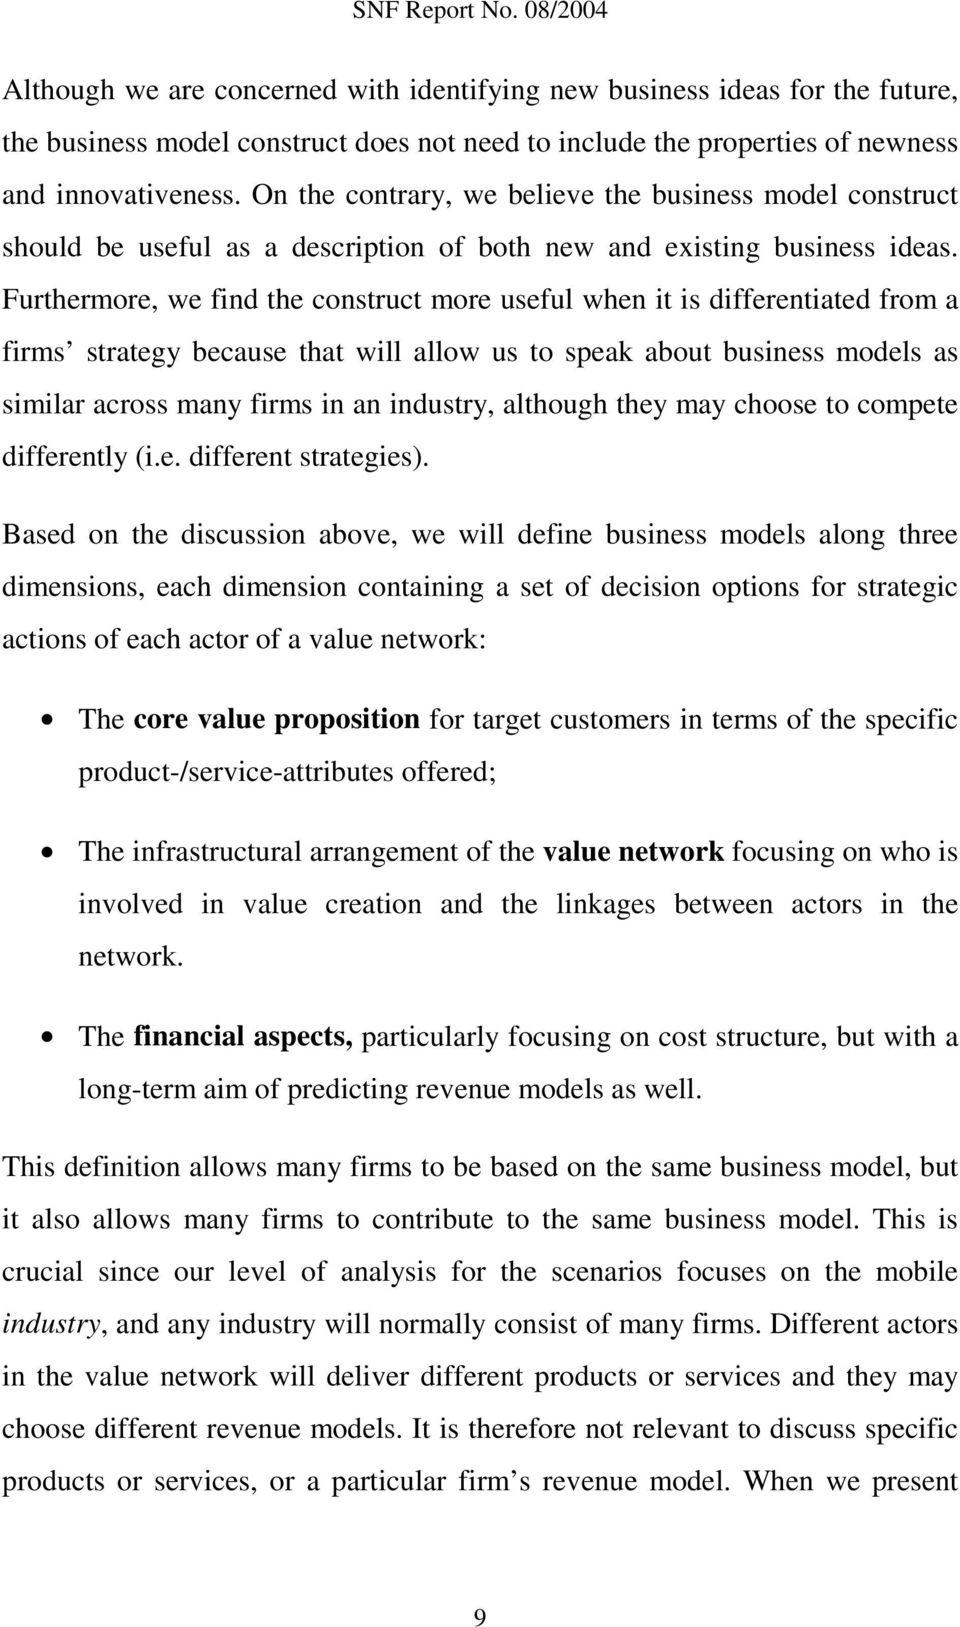 Furthermore, we find the construct more useful when it is differentiated from a firms strategy because that will allow us to speak about business models as similar across many firms in an industry,